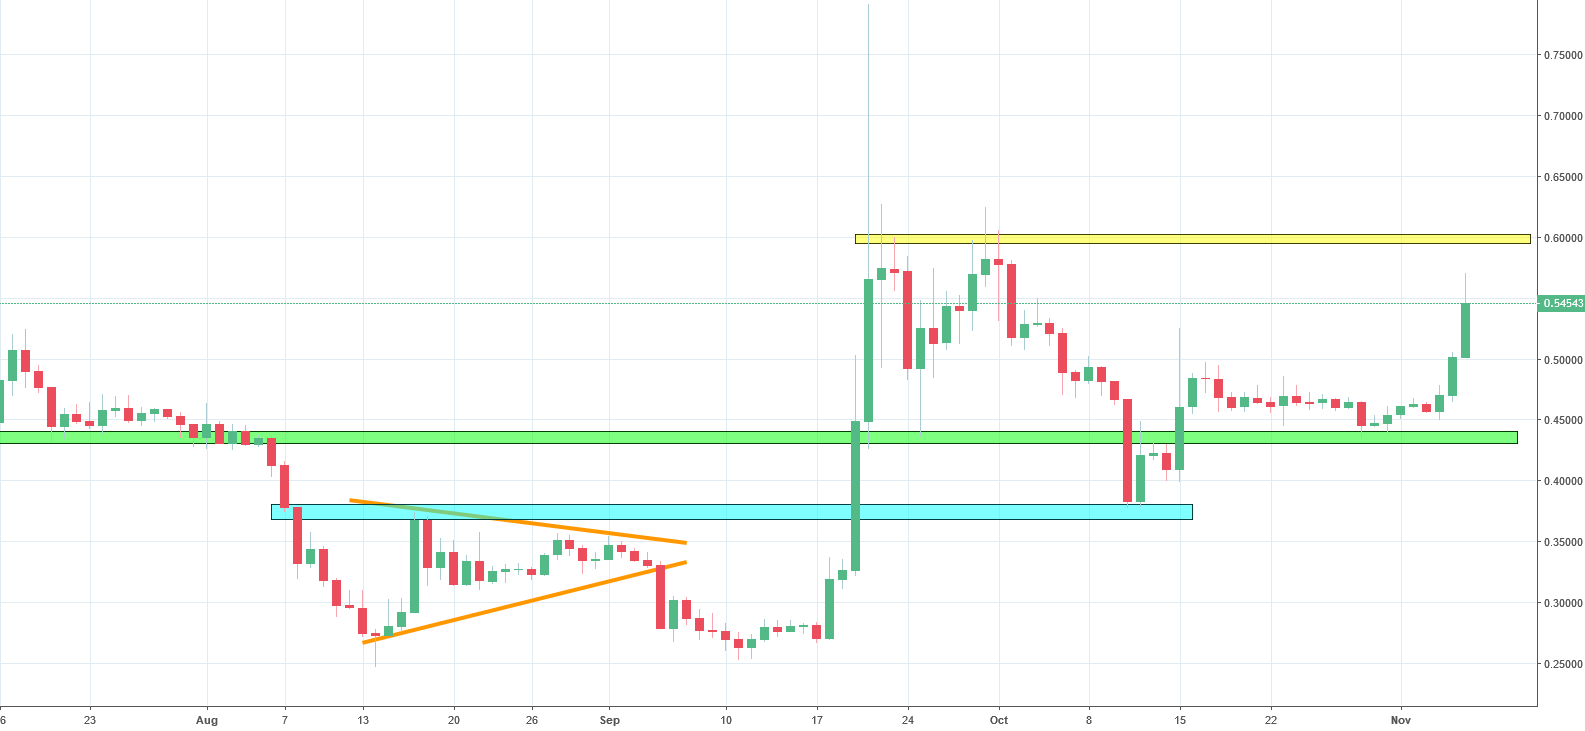 Ripple Analysis - price bounces back after hitting the support line